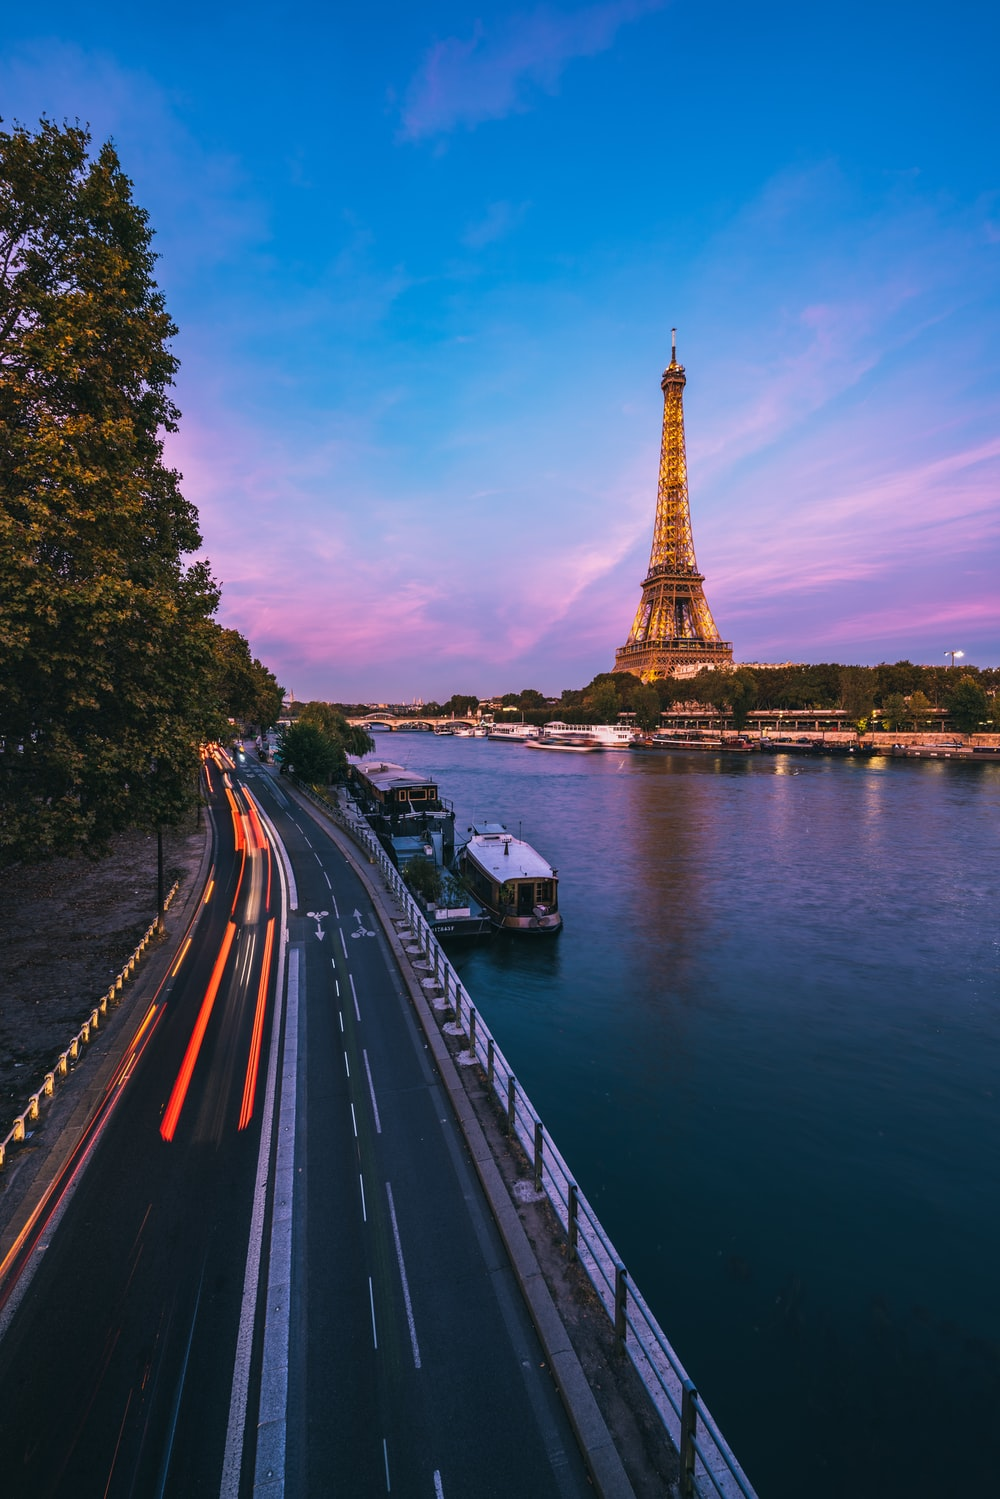 road in front of Eiffel Tower during daytime